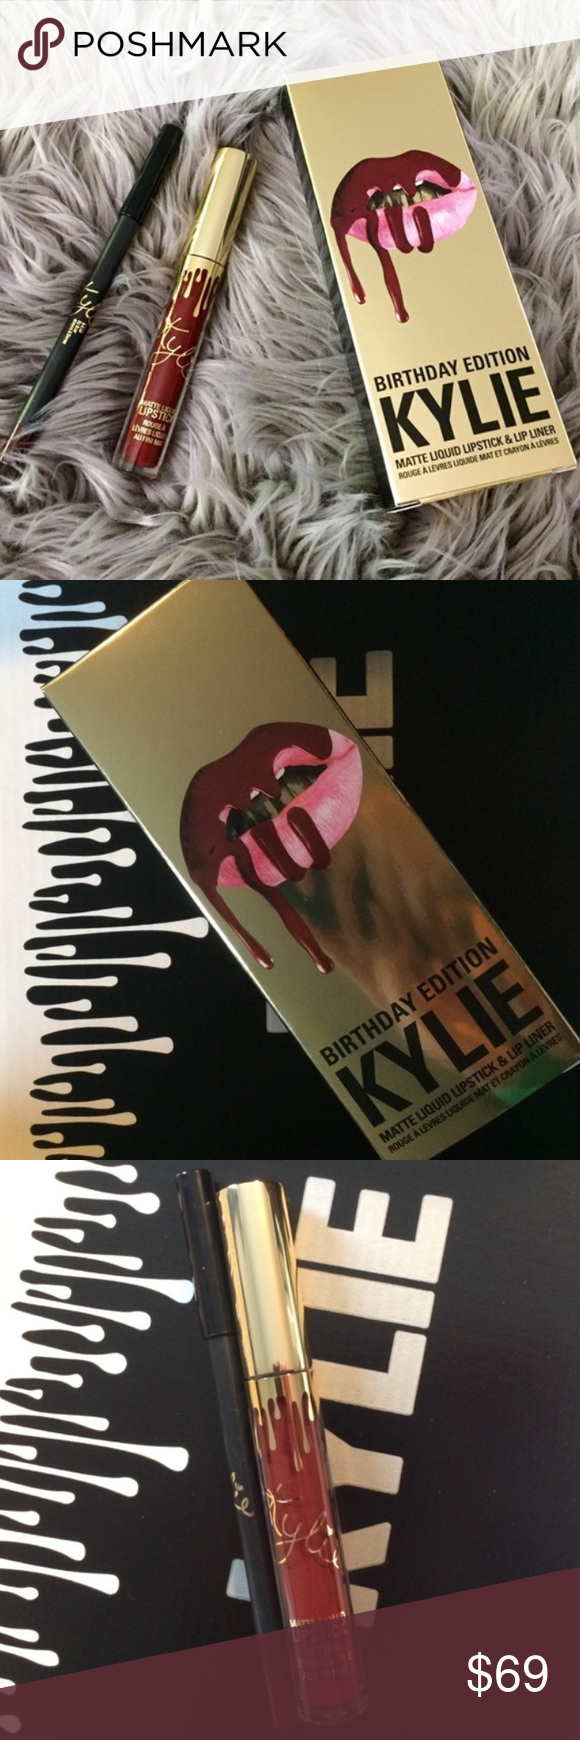 Shipping NOW ❤️ Kylie Cosmetics LEO Lip Kit SHIPPING NOW!! Placed my order on the 2nd birthday restock - it will be unopened untouched, I will send it in the sealed packaging along with the box it comes with. Comment with any questions and feel free to make an offer (but be aware I need to make at least what I payed for once posh takes) Kylie Cosmetics Makeup Lipstick